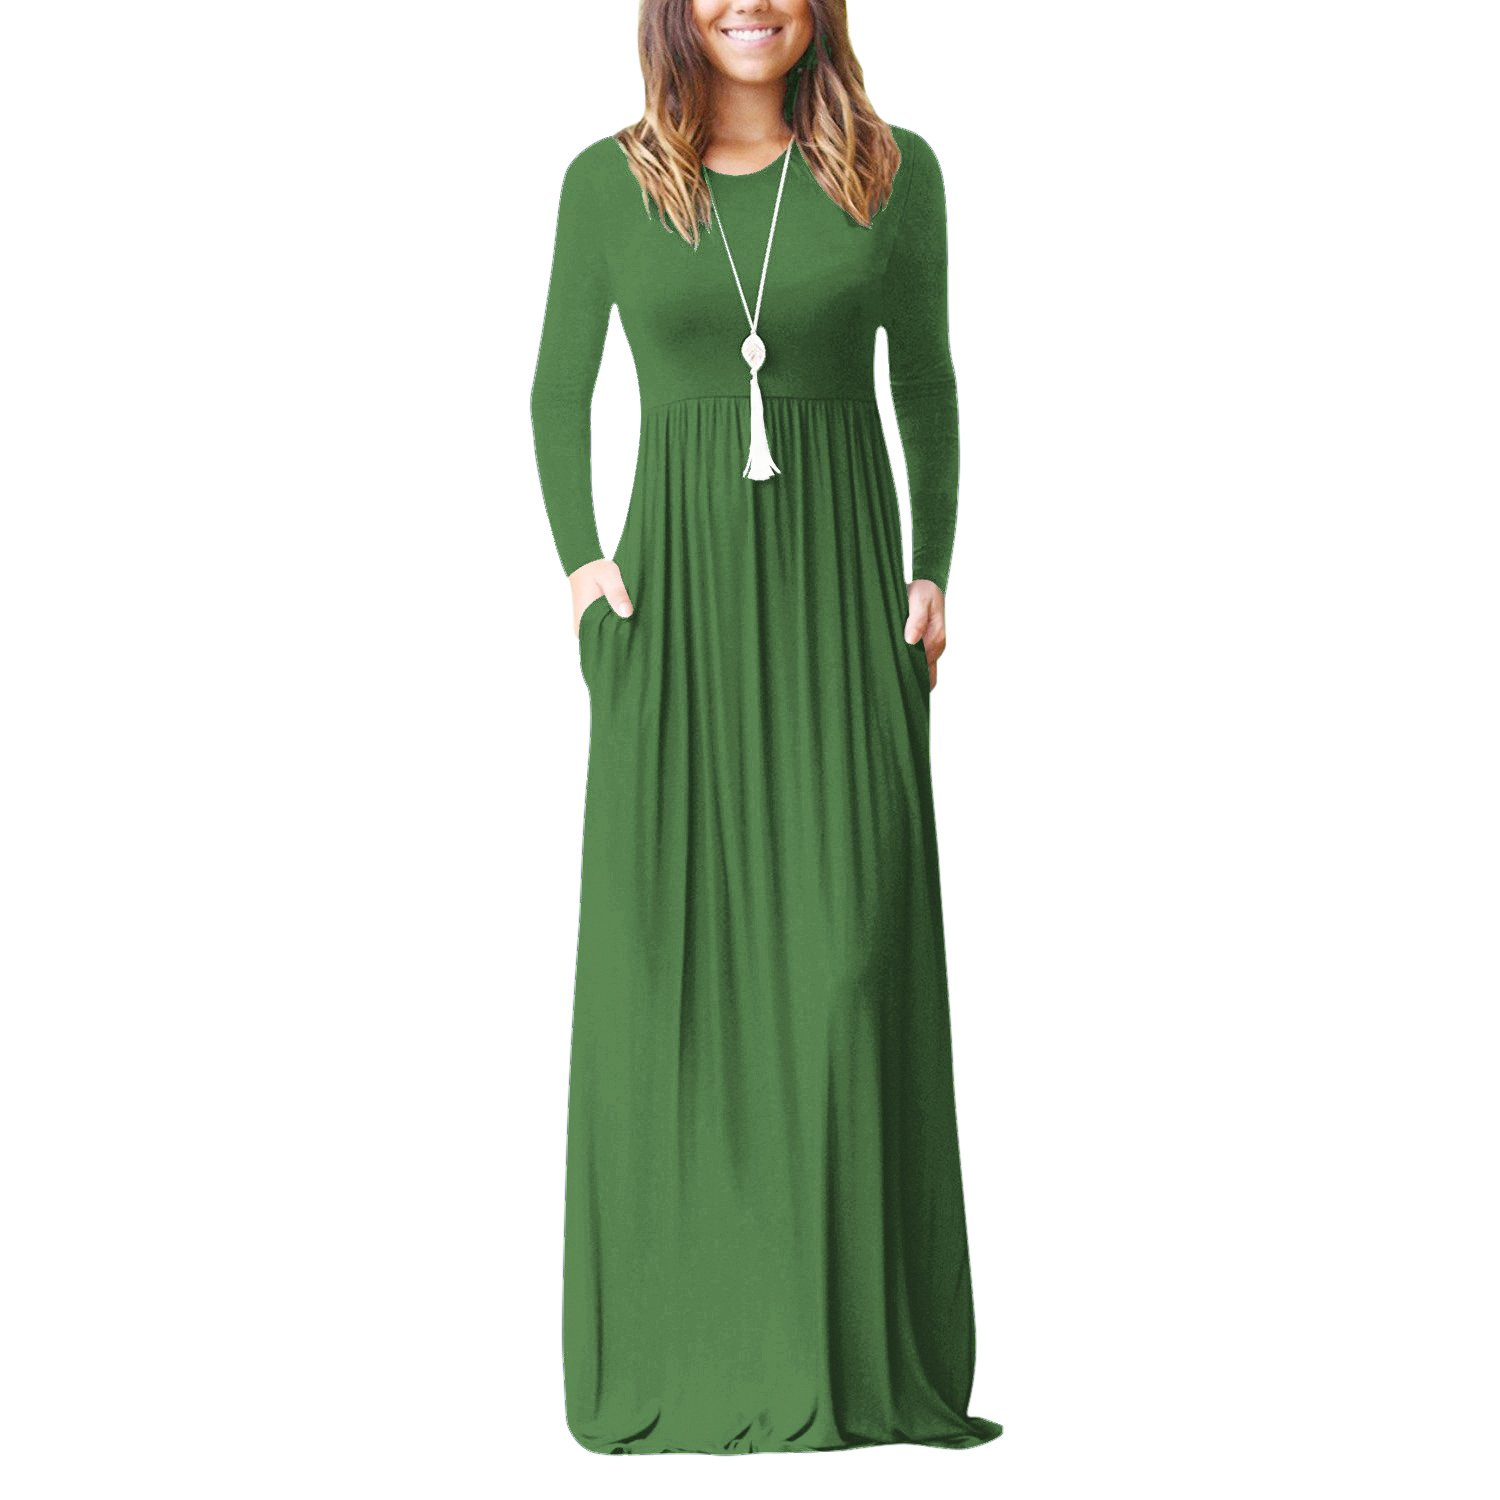 fcca38daf24e3 ... maxi dress, suitable for both base wear and outer wear in four seasons.  Women\'s Casual Style,Two Side Pockets,Long Sleeves,Round Neck,Floor Length  ...